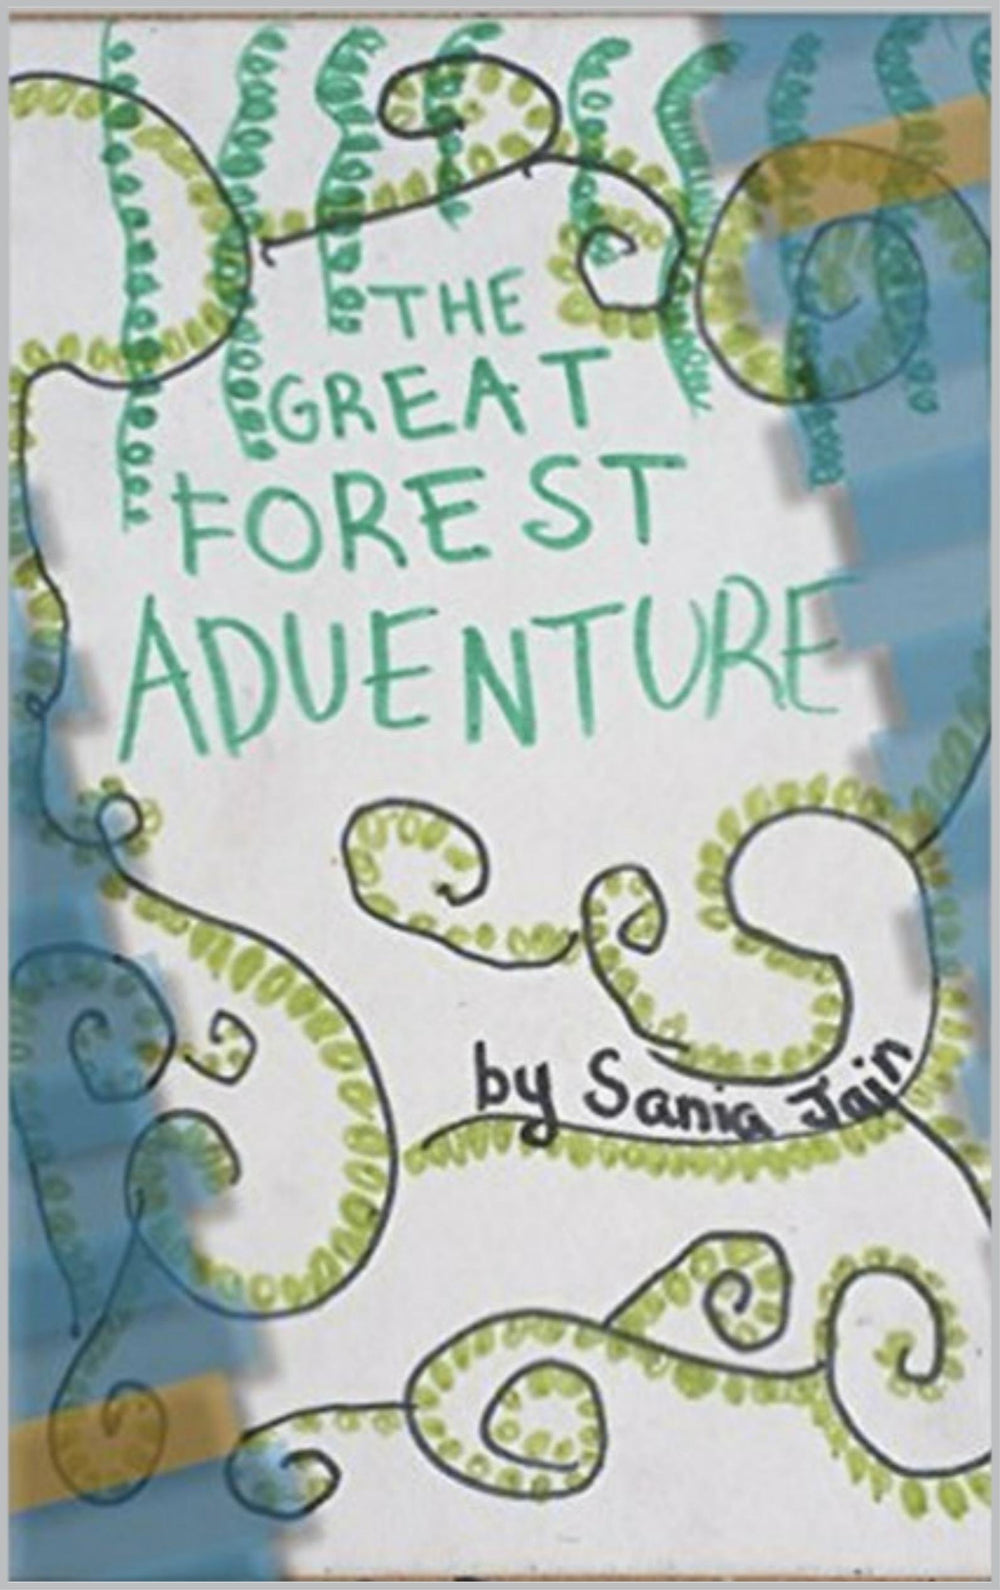 The Great Forest Adventure